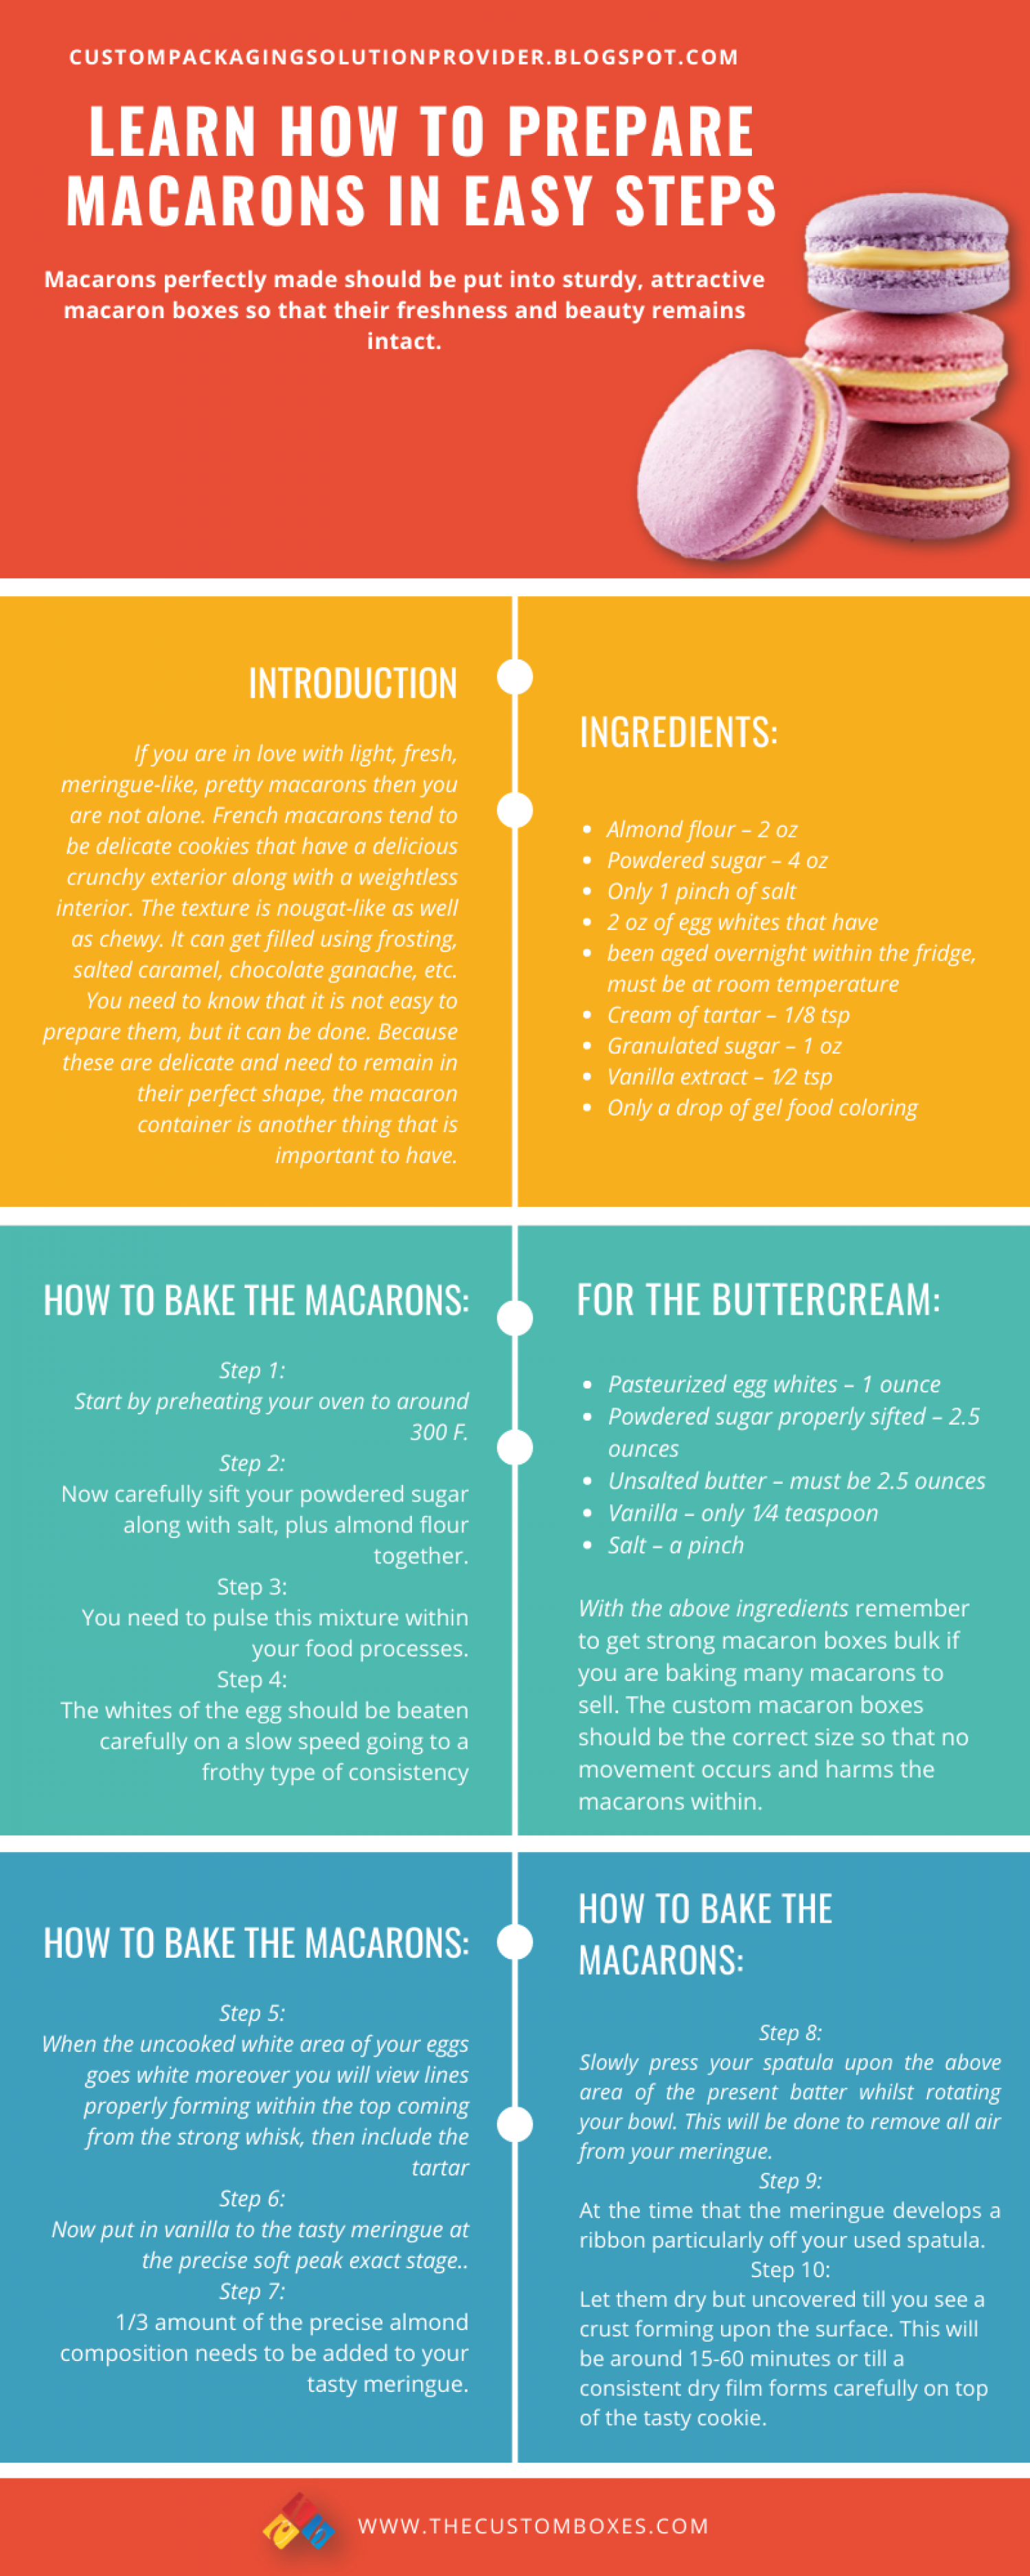 Infographic, Learn How To Prepare Macarons In Easy Steps Infographic